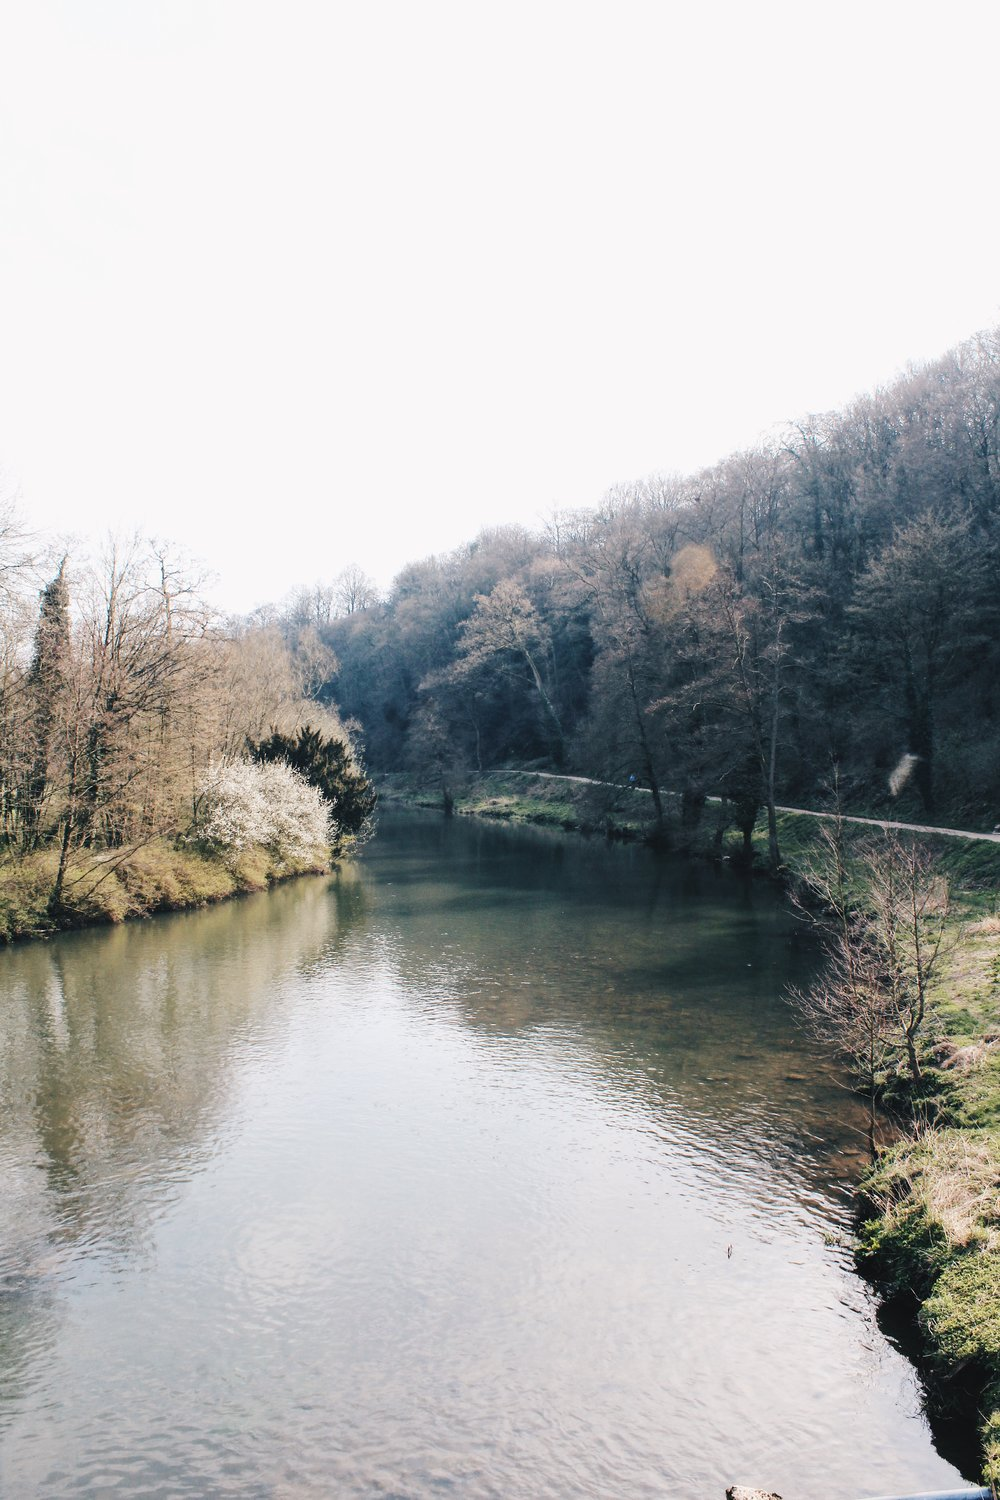 The tranquil view of the river Teme. You could be anywhere. It's such a lovely walk.